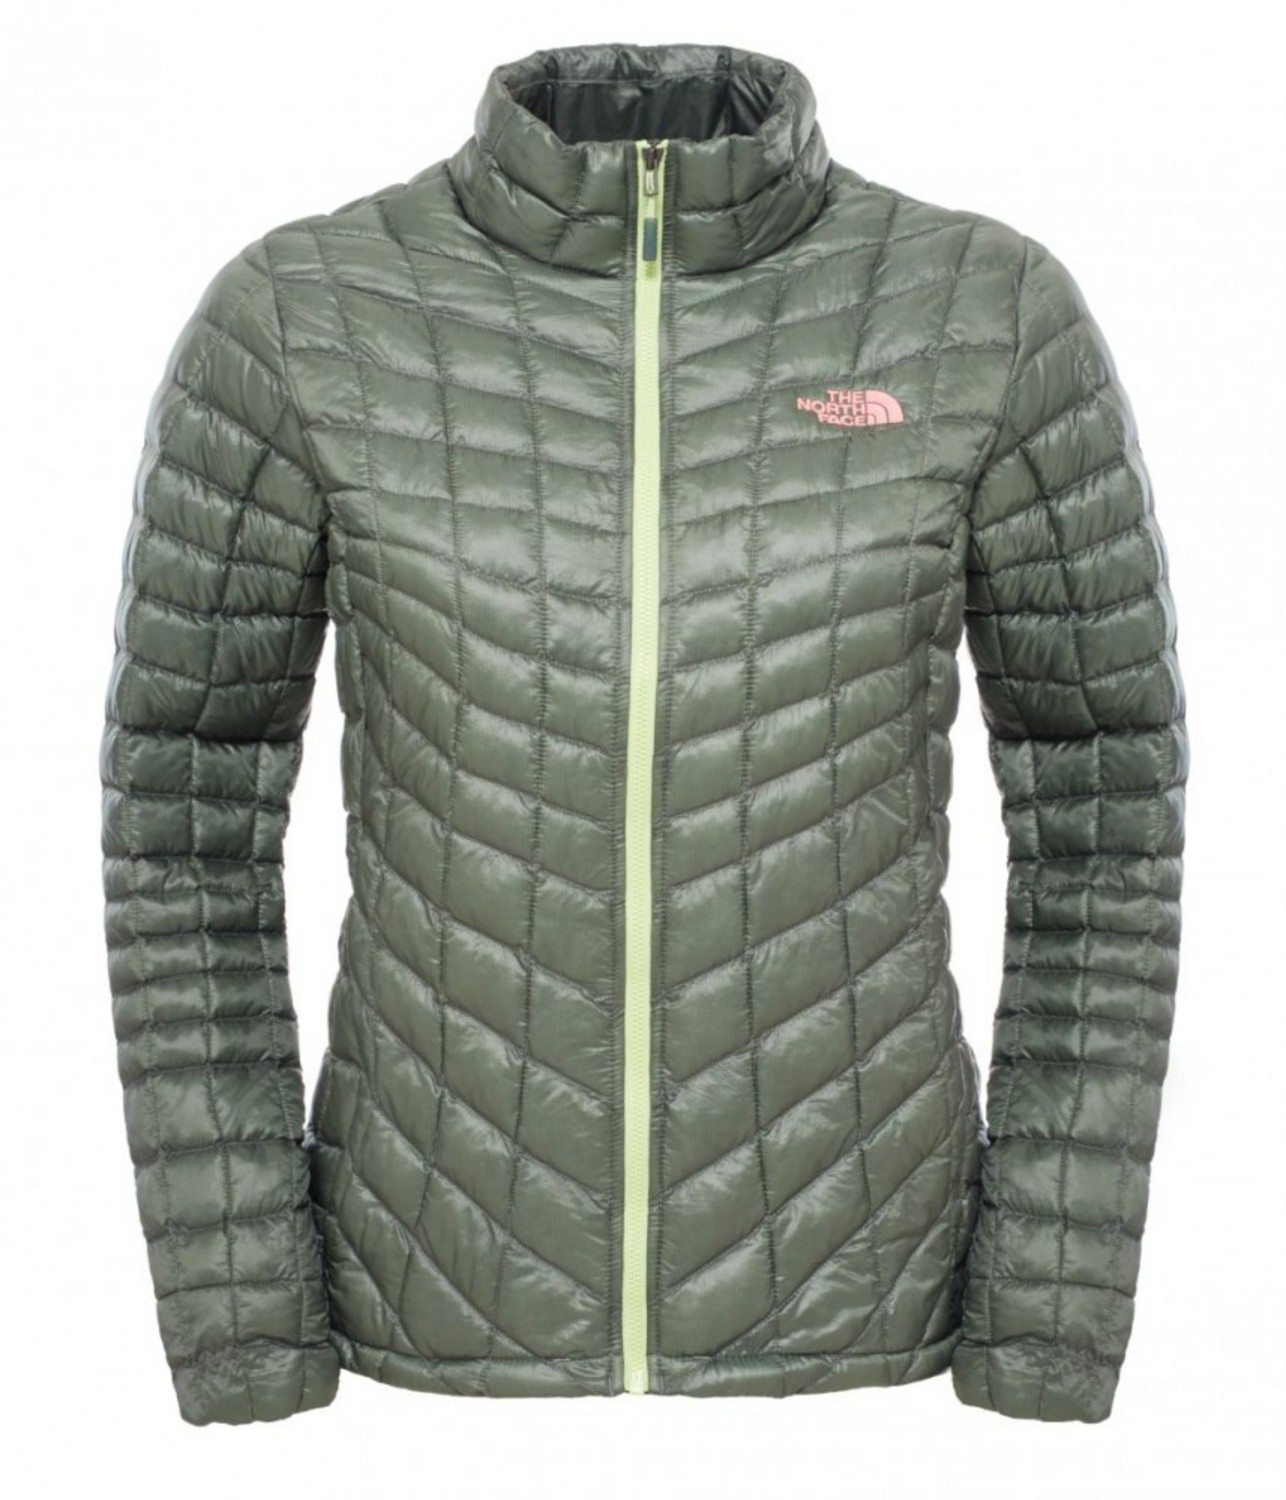 b51f9742c The North Face Women's Thermoball Full Zip Jacket